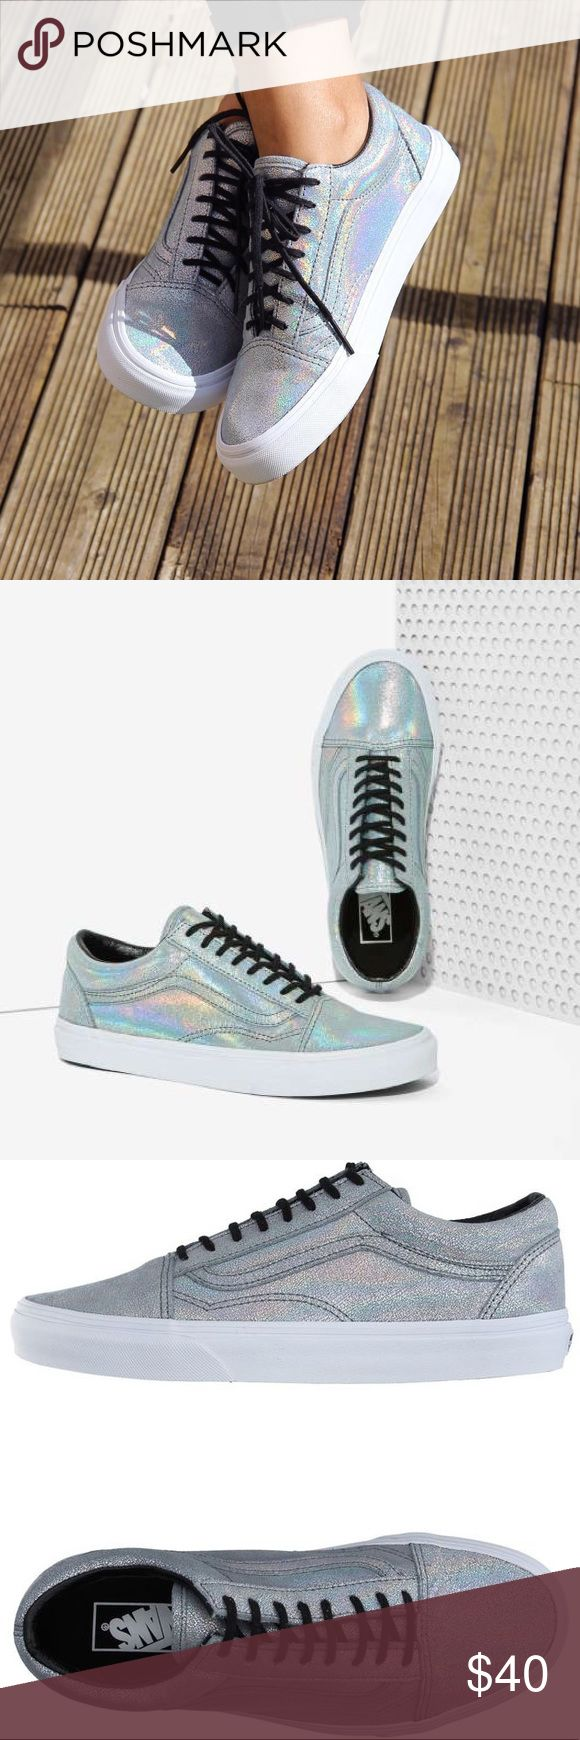 """Vans Old Skool Holographic Hologram Holo Sneakers Excellent used condition. Worn 2-3x only. Labeled """"women's size 8 / men's size 6.5"""". Details include """"matte iridescent silver"""" material, 1"""" block heel and lace closure. I currently have holographic laces on one show and the original black on the other, but I will send both to the buyer. Pics 1-2 are stock. Pics 3-8 are actual item. I ALSO HAVE AN AWESOME HOLOGRAPHIC BAG FOR SALE IN MY CLOSET, so you can bundle for a discount! 👍🏻 Please feel…"""